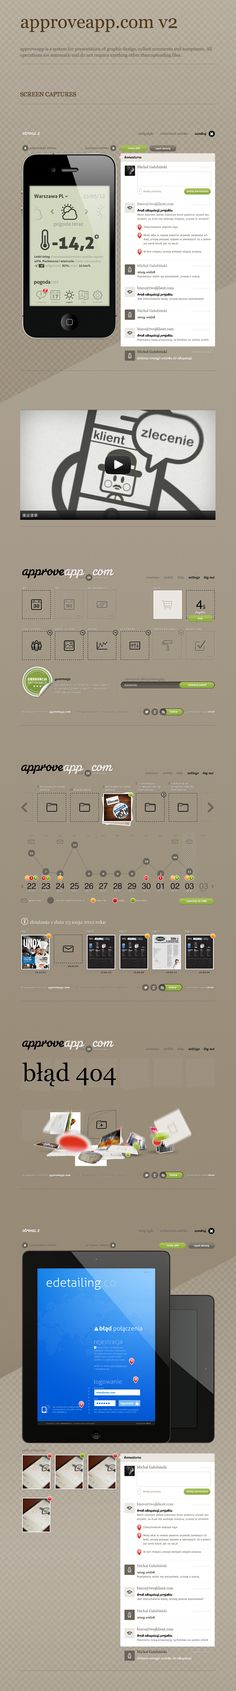 like the layout of the weather app.    approveapp.com v2 by Michal Galubinski, via Behance